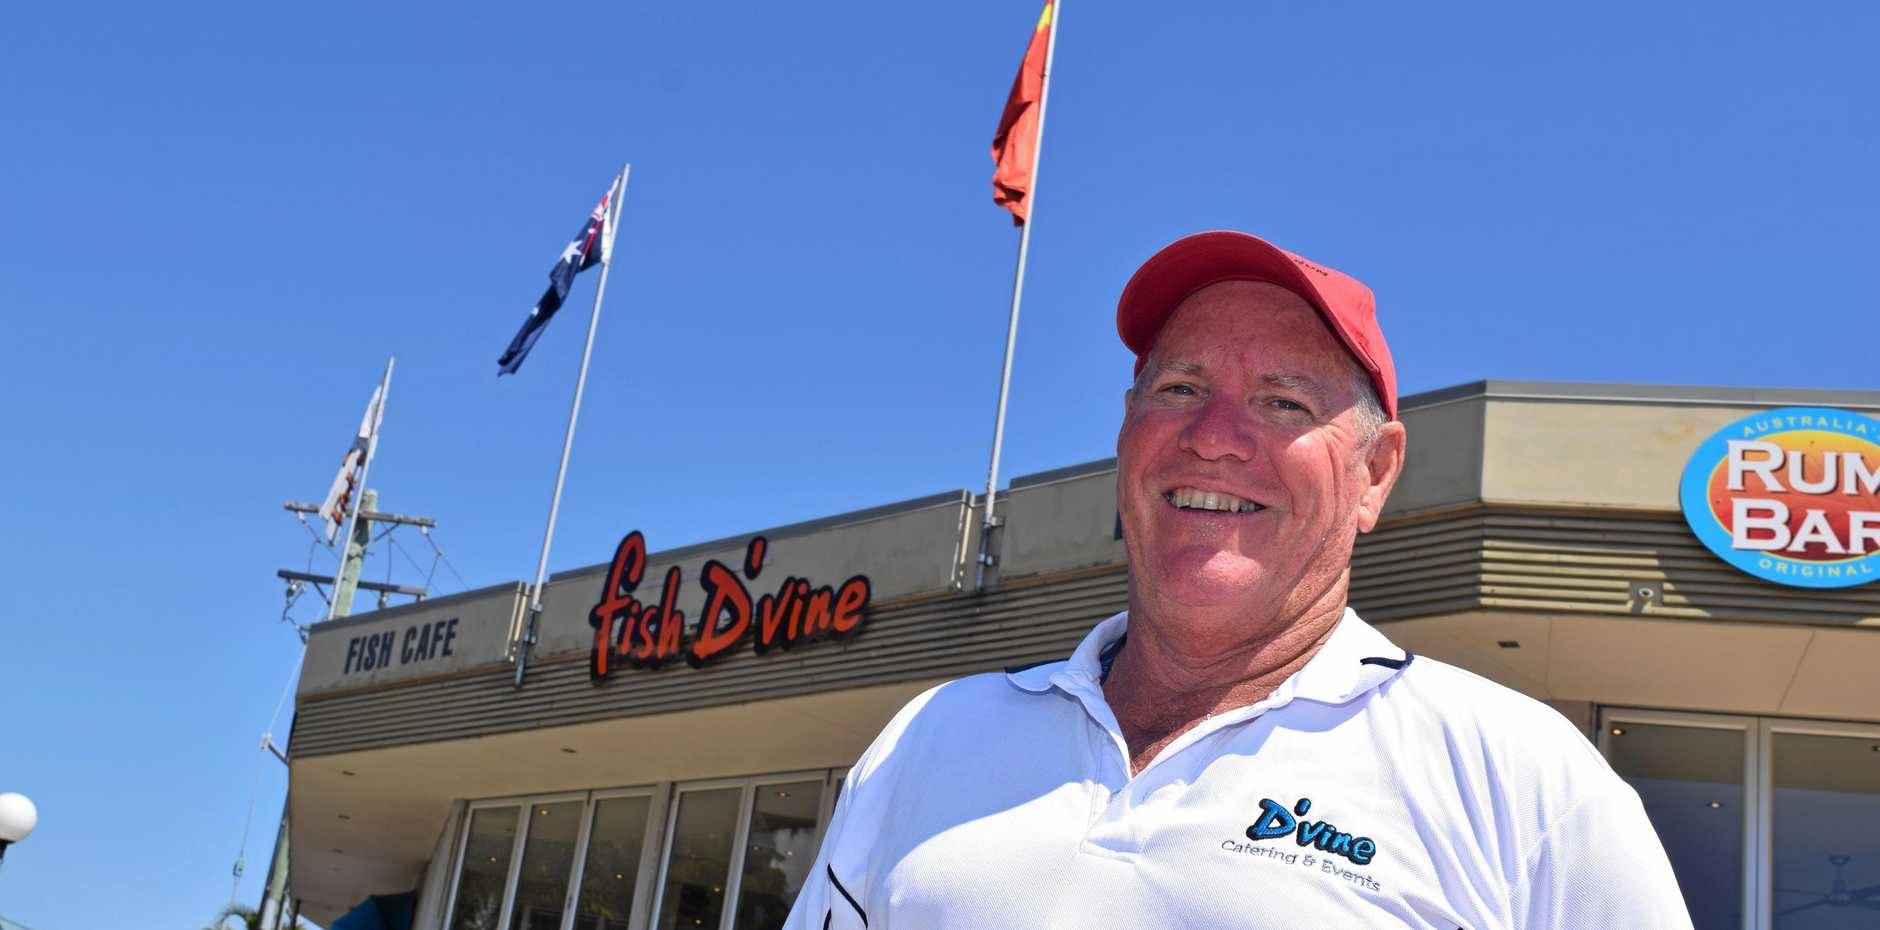 IMPORTANT WEEK: Fish D'Vine and the Rum Bar co-owner Kev Collins with the Chinese flag the restaurant has been flying to welcome tourists to the region during Golden Week.